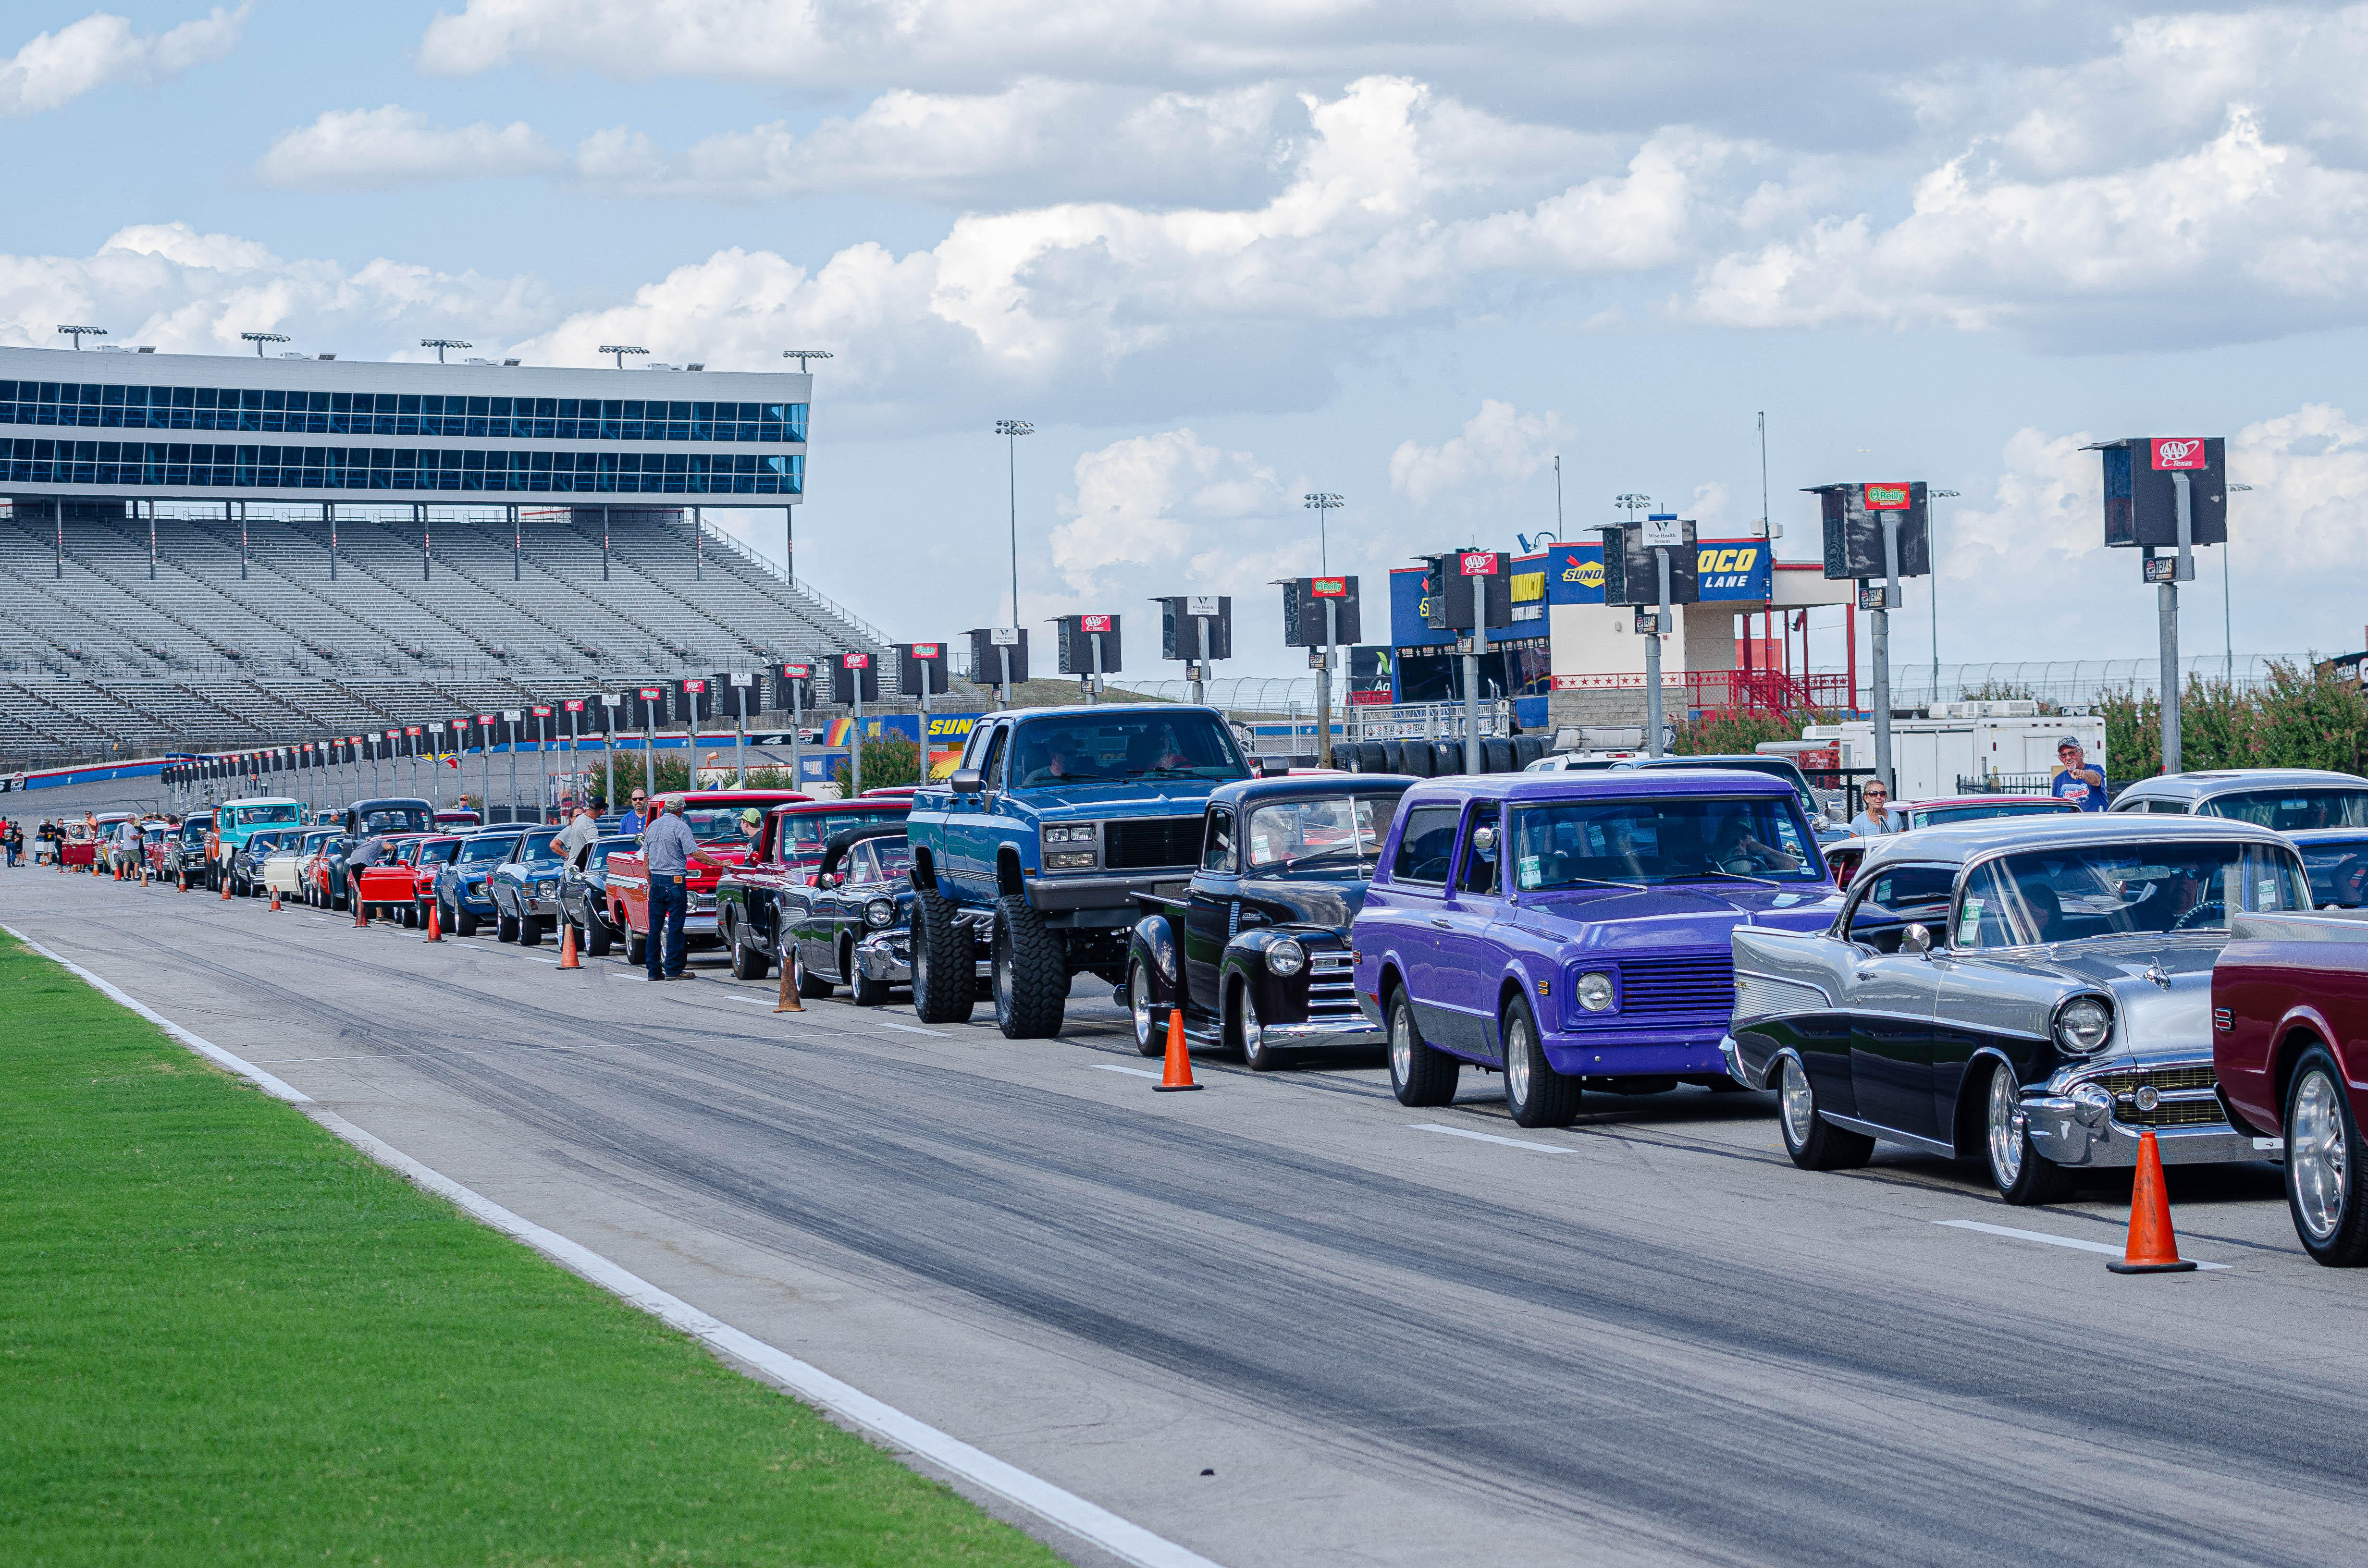 Goodguys Is Adding Another Texas Event For 2021! INAUGURAL MEGUIAR'S ALL STAR GET-TOGETHER AT TEXAS MOTOR SPEEDWAY